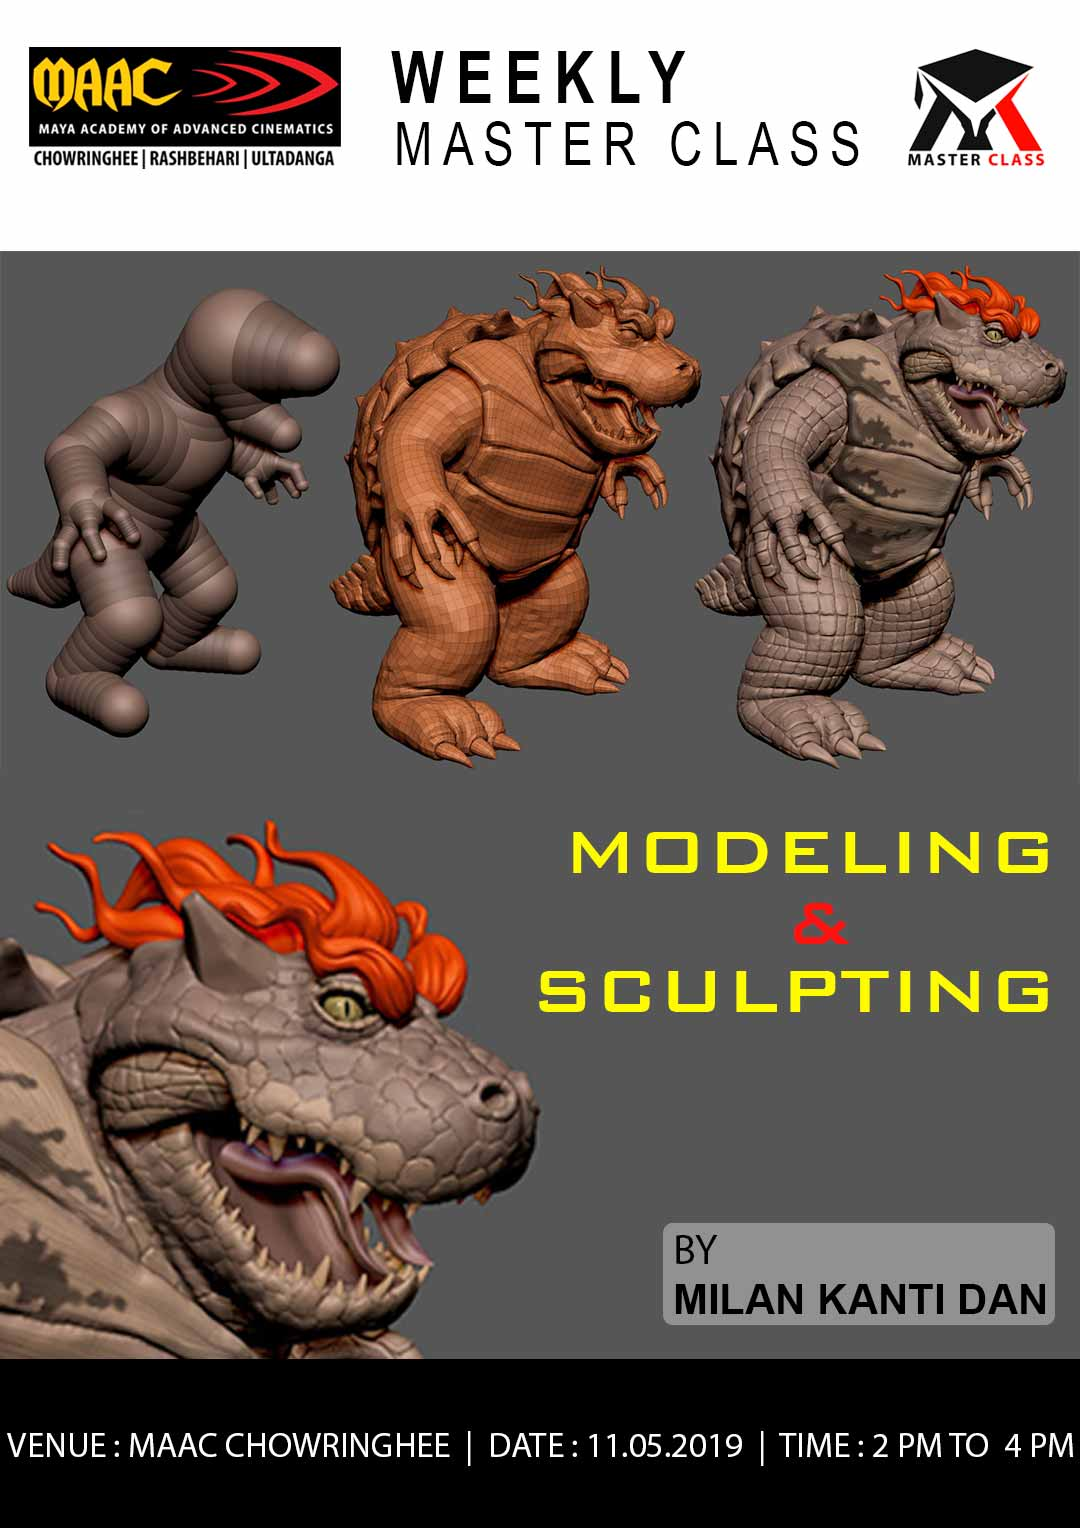 Weekly Master Class on Modeling & Sculpting